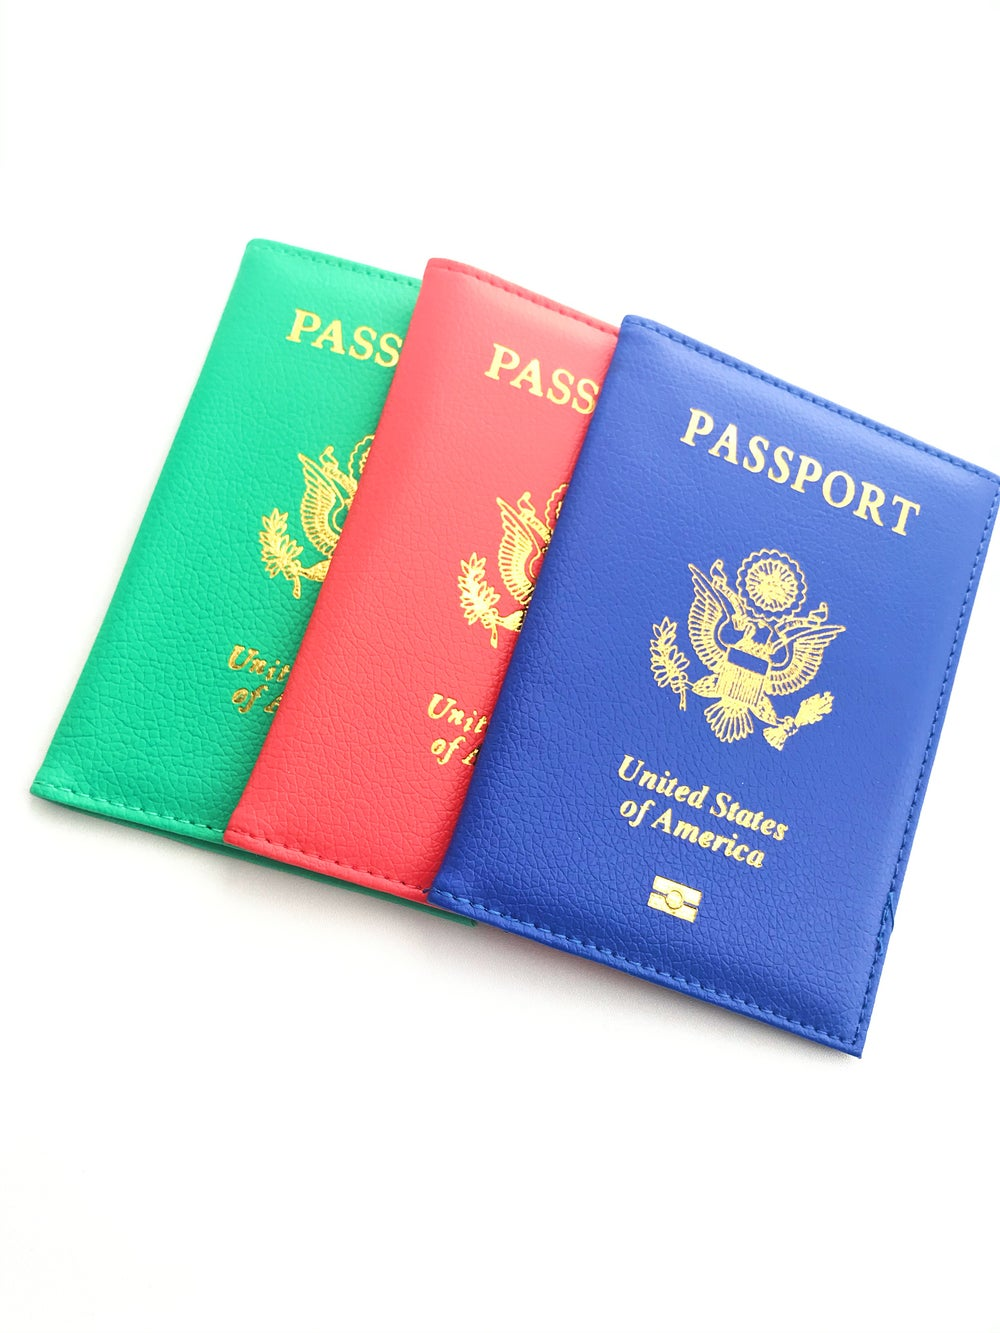 Image of I'm Outta Here Passport Covers